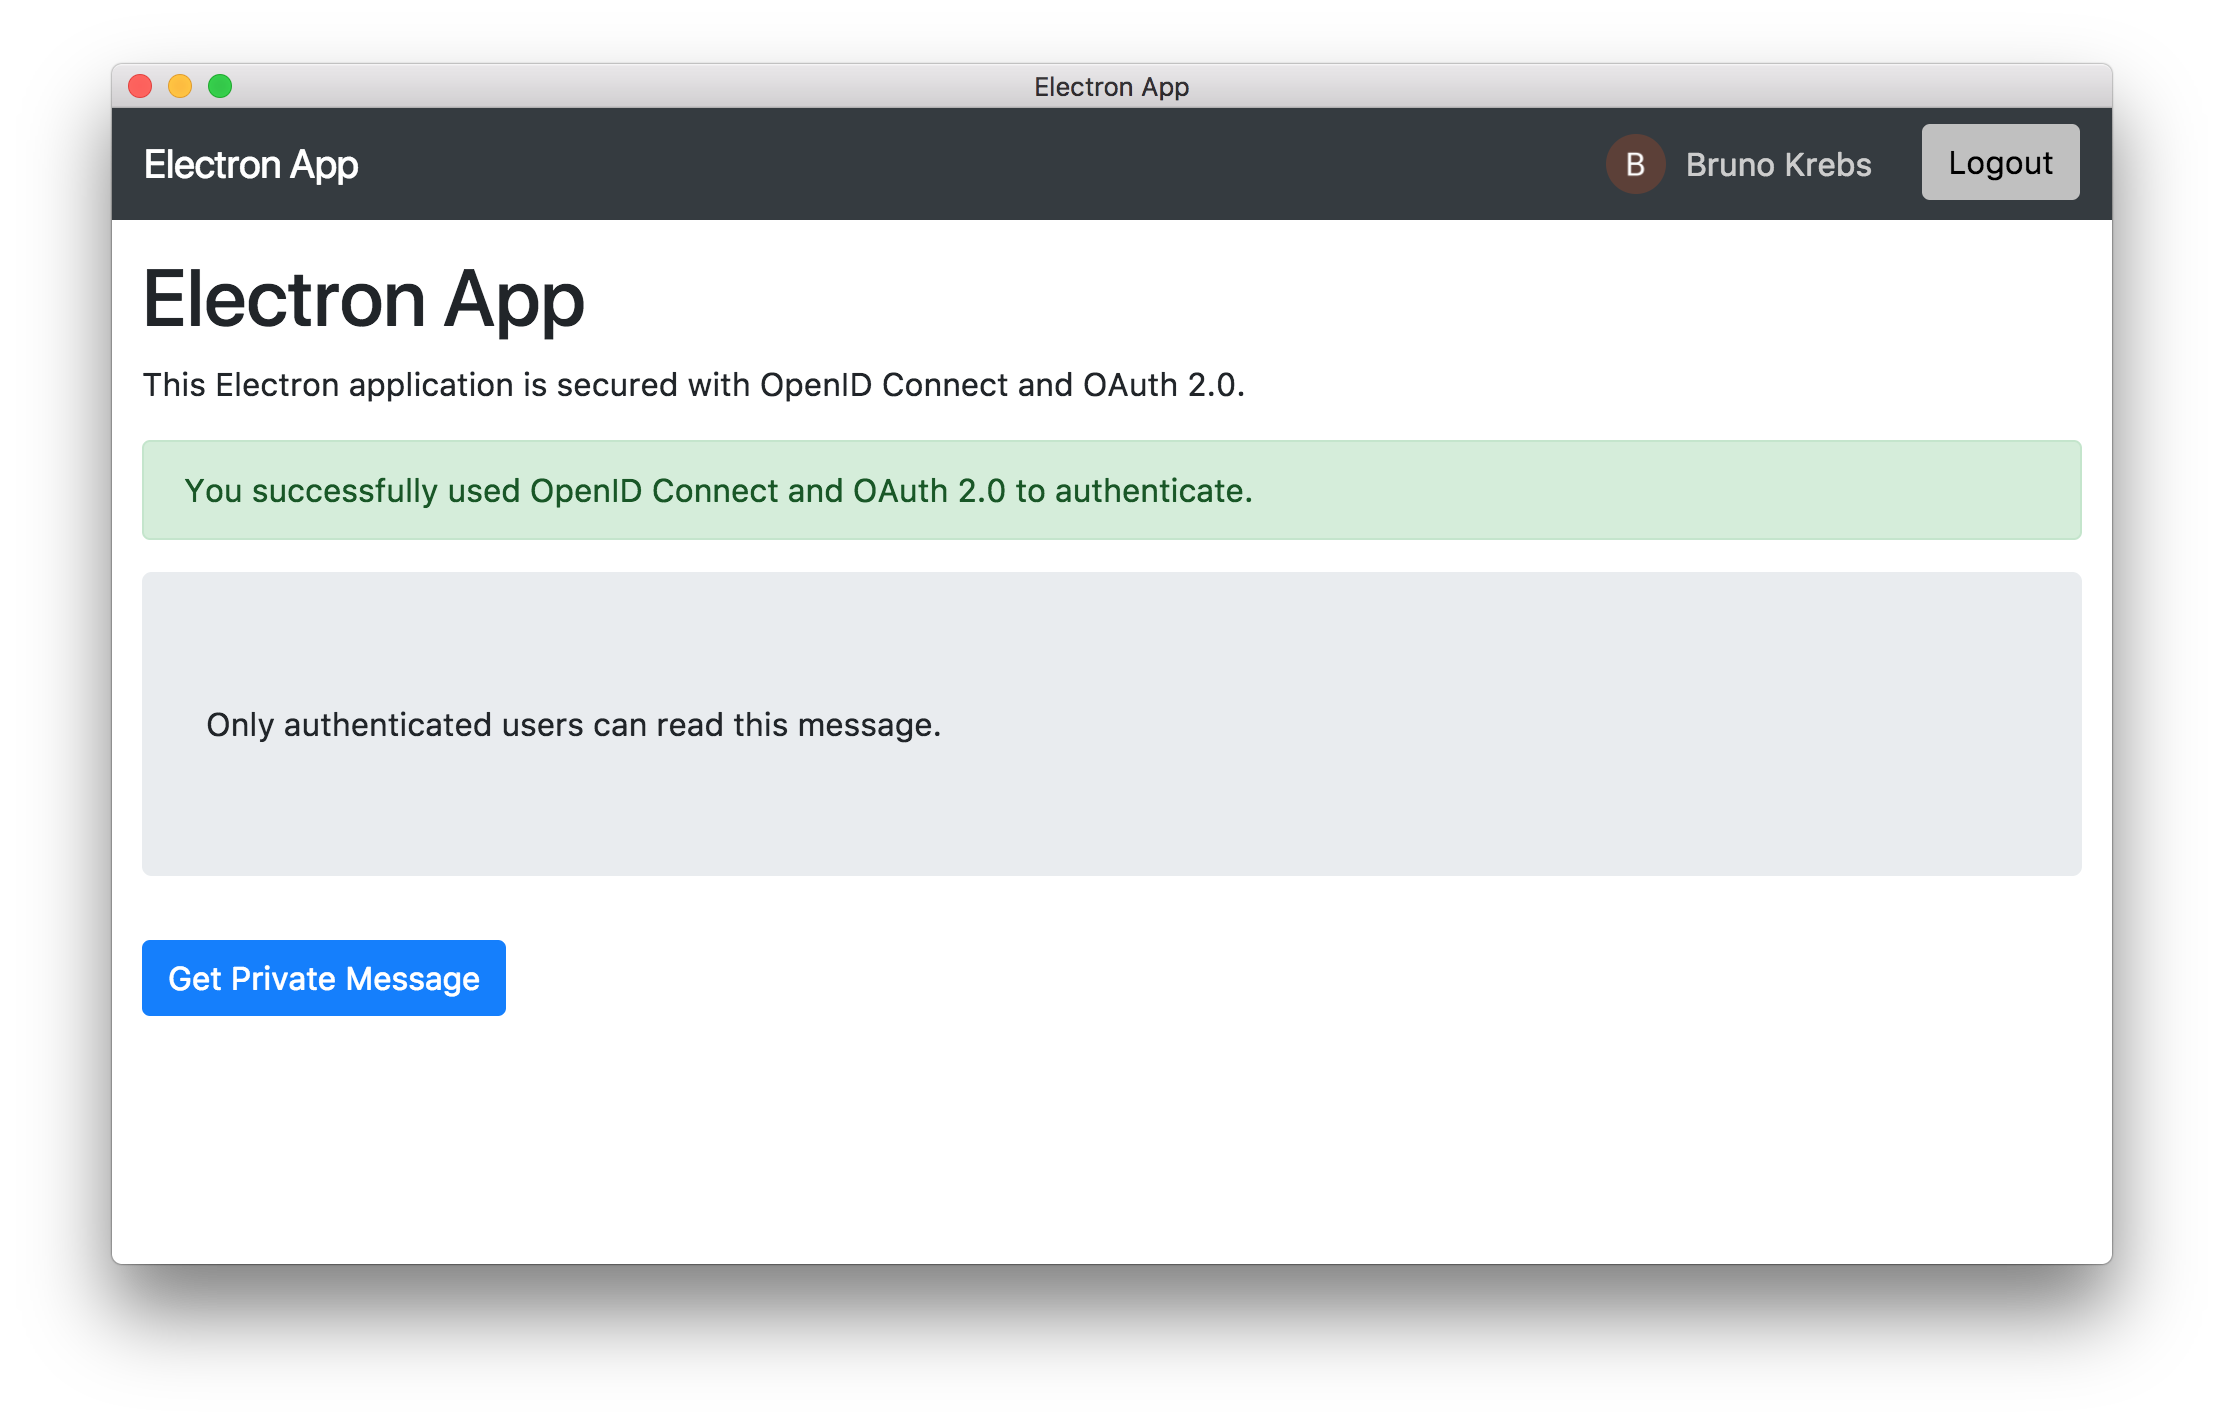 Electron application secured with OpenID Connect and OAuth 2.0